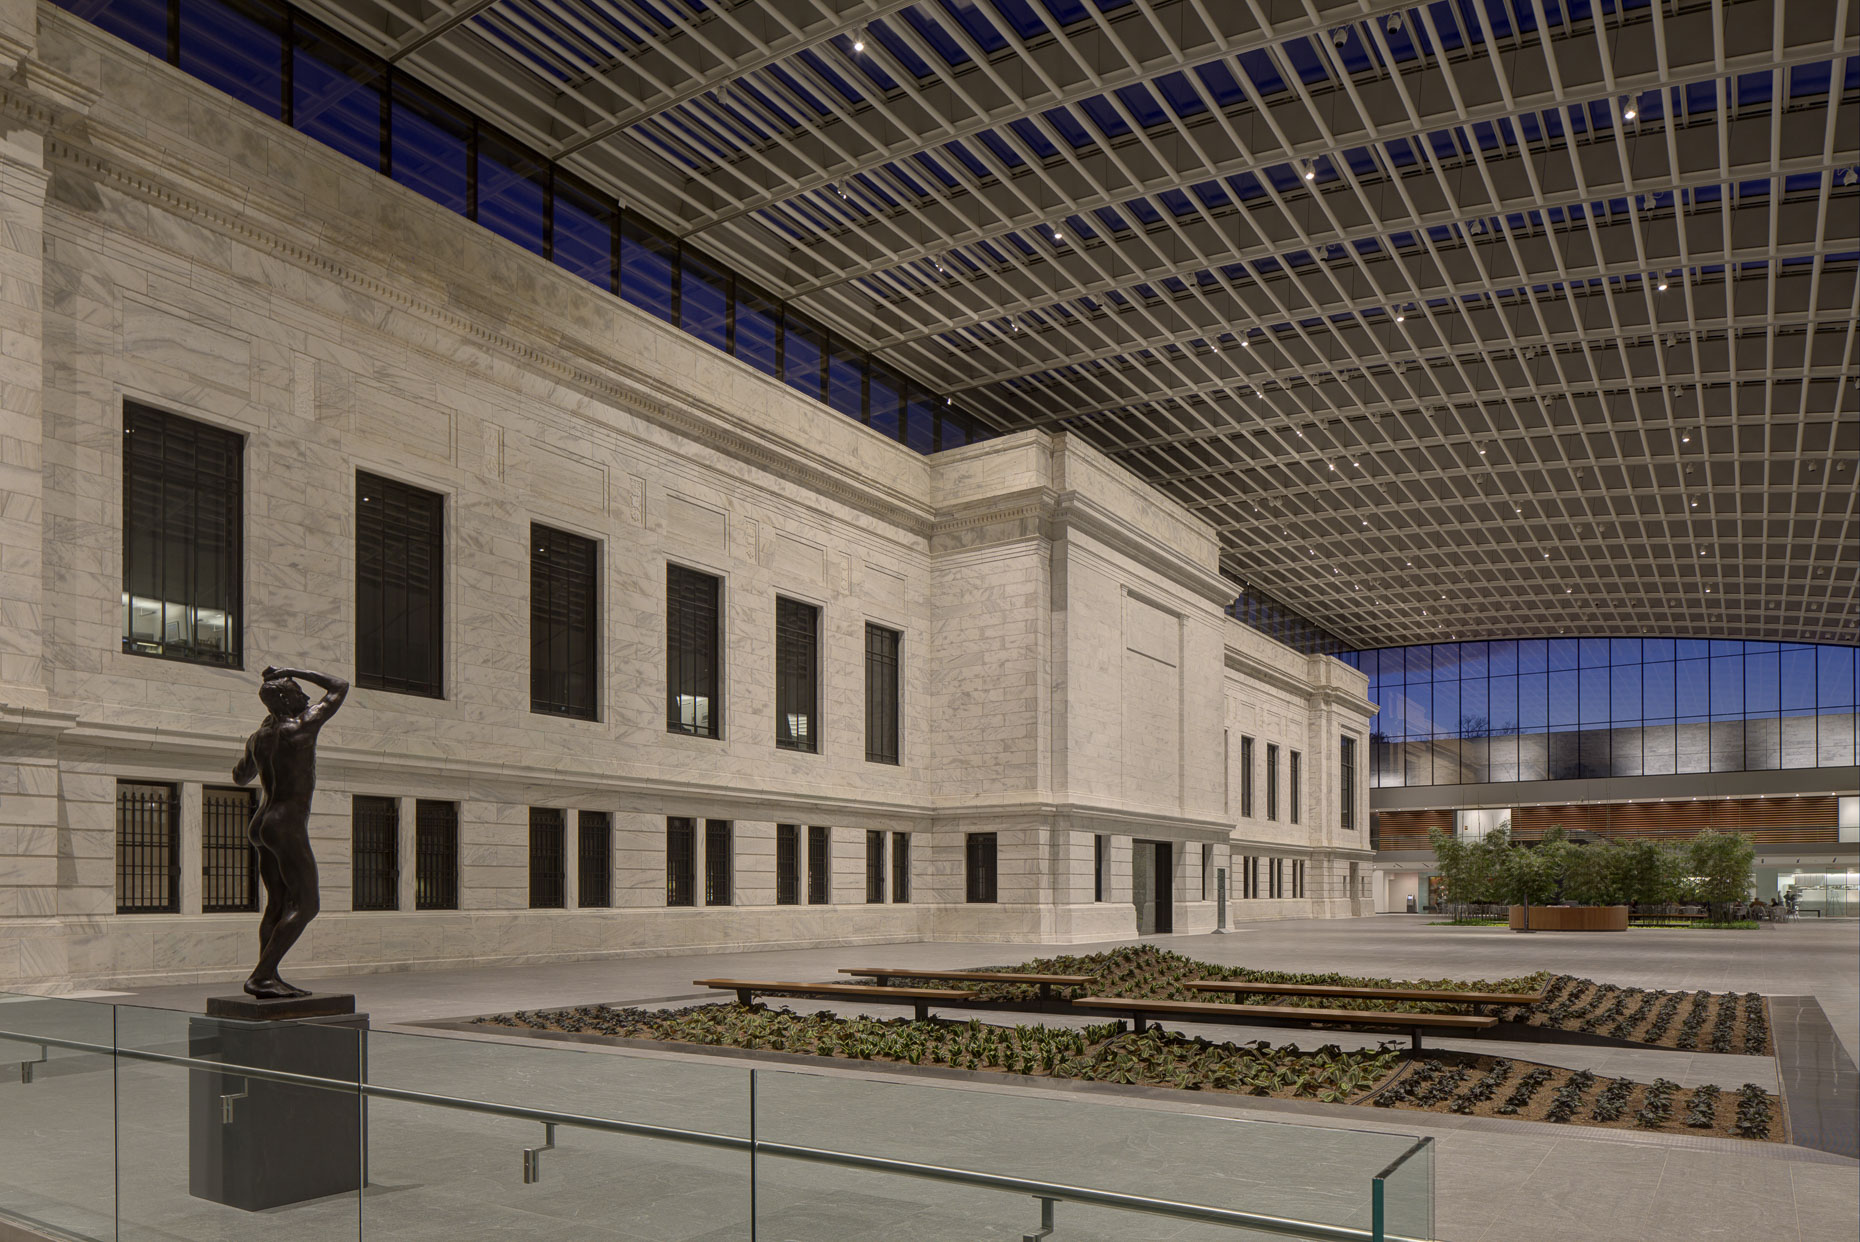 Cleveland Museum of Art Atrium by Rafael Vinoly Architects Photographed by Brad Feinknopf based in Columbus, Ohio